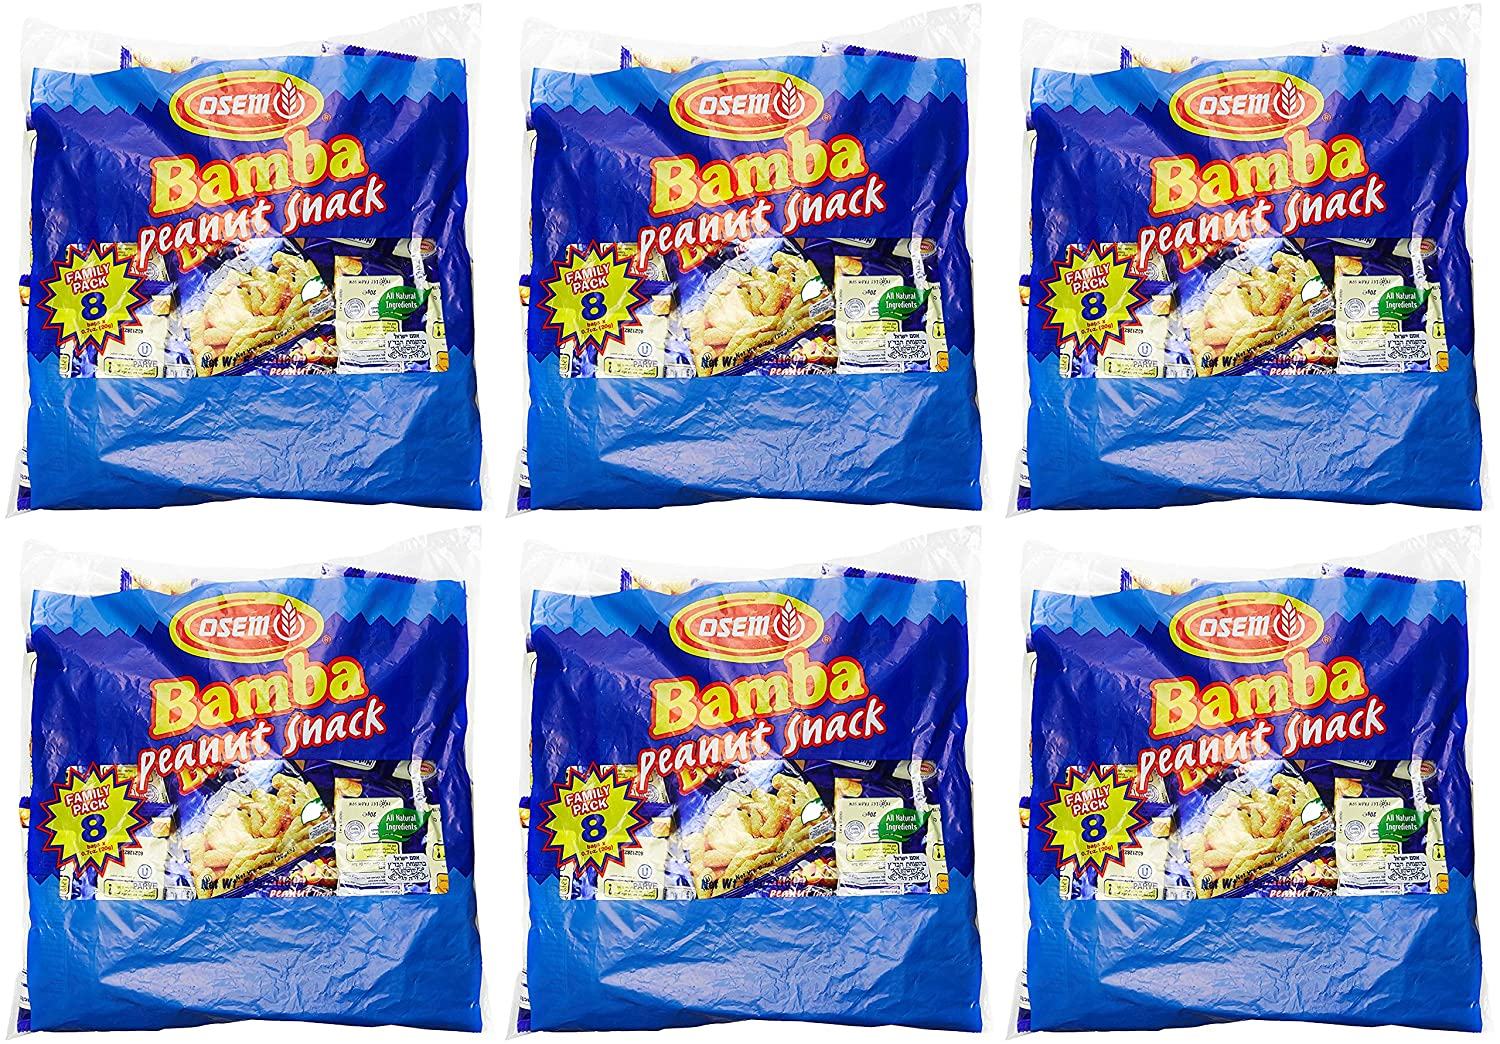 Bamba Peanut Snacks for Babies - All Natural Baby Peanut Puffs 6 Family Packs (Pack of 48 x 0.7oz Bags) - Peanut Butter Puffs made with 50% peanuts